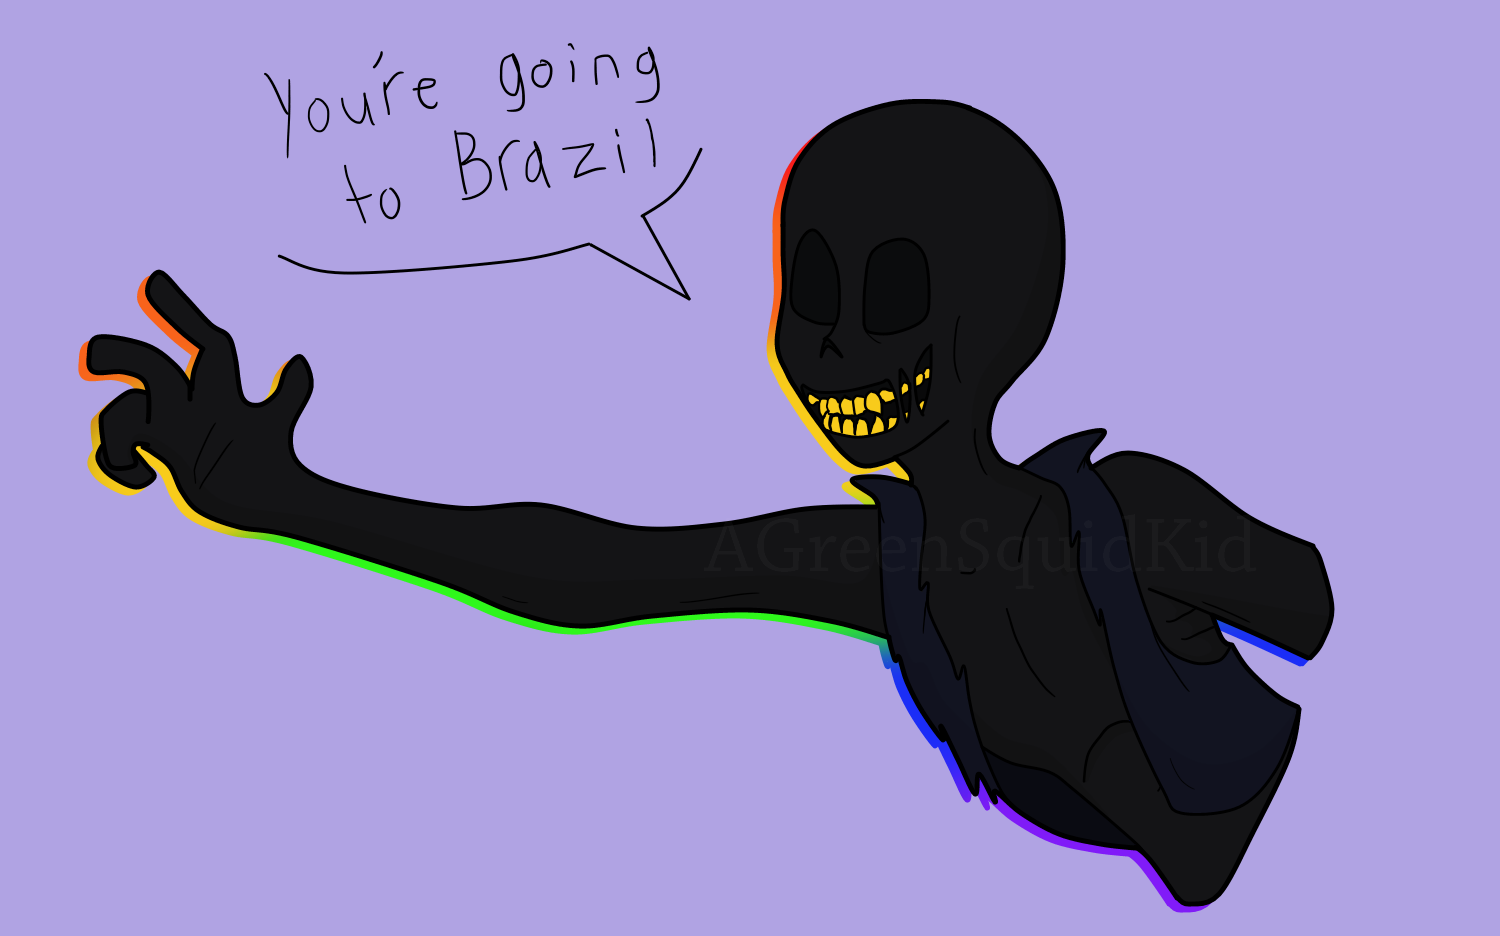 u%20goin%20to%20brazil.png